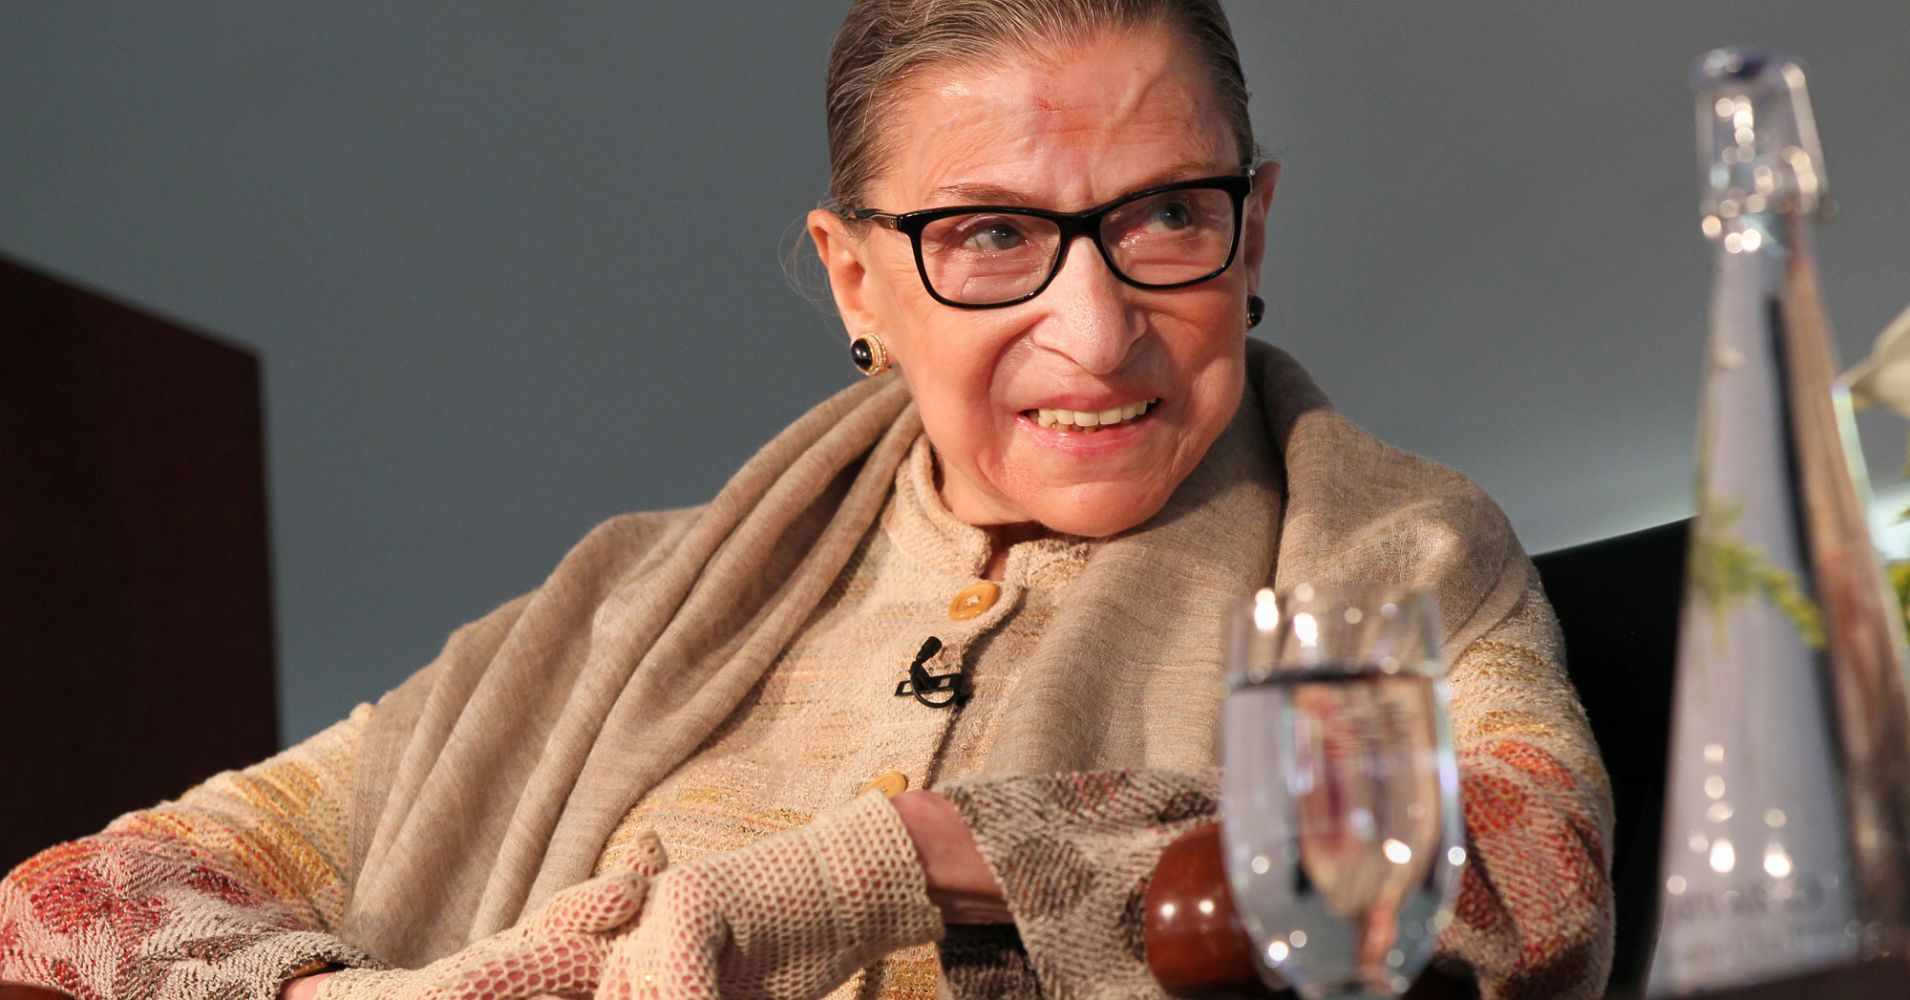 Supreme Court Justice Ruth Bader Ginsburg 85 Breaks Ribs